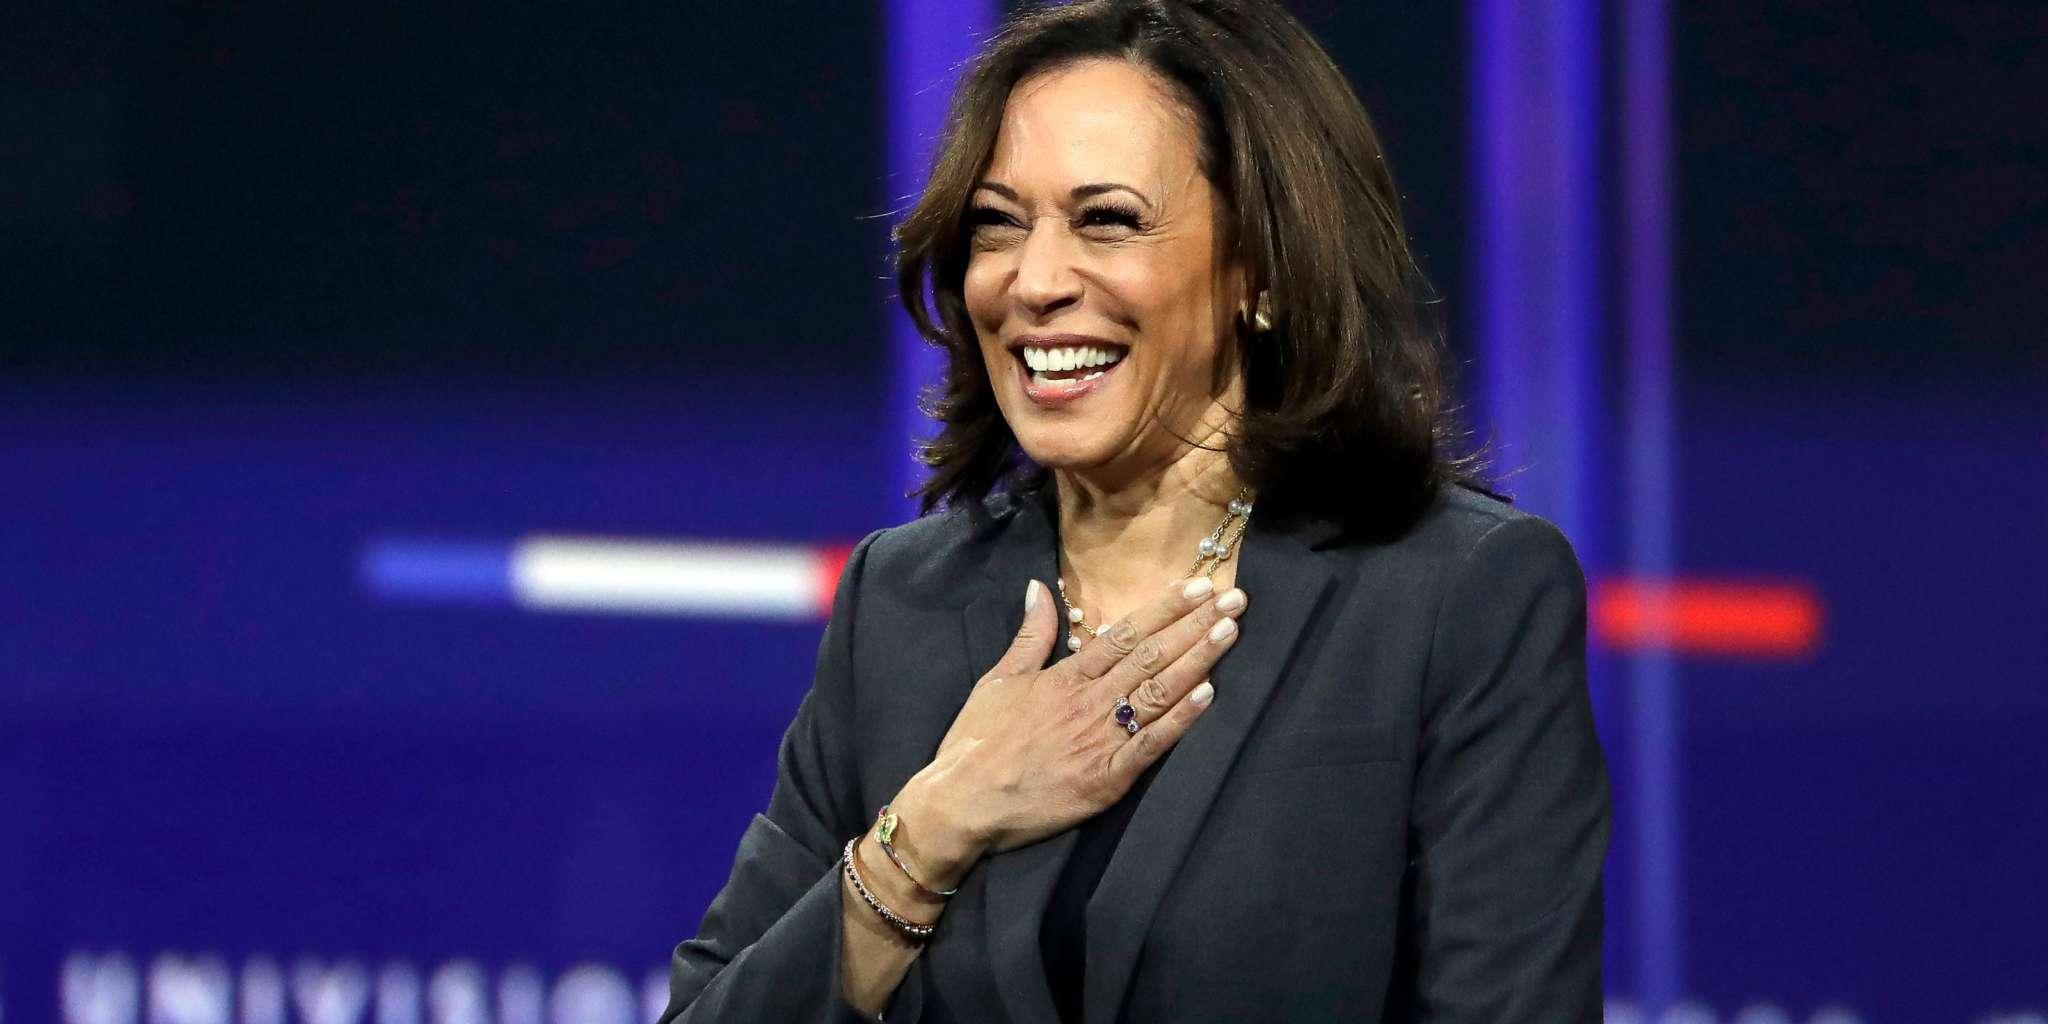 Kamala Harris Tells Fans To Tune In For An Election Protection Briefing Now